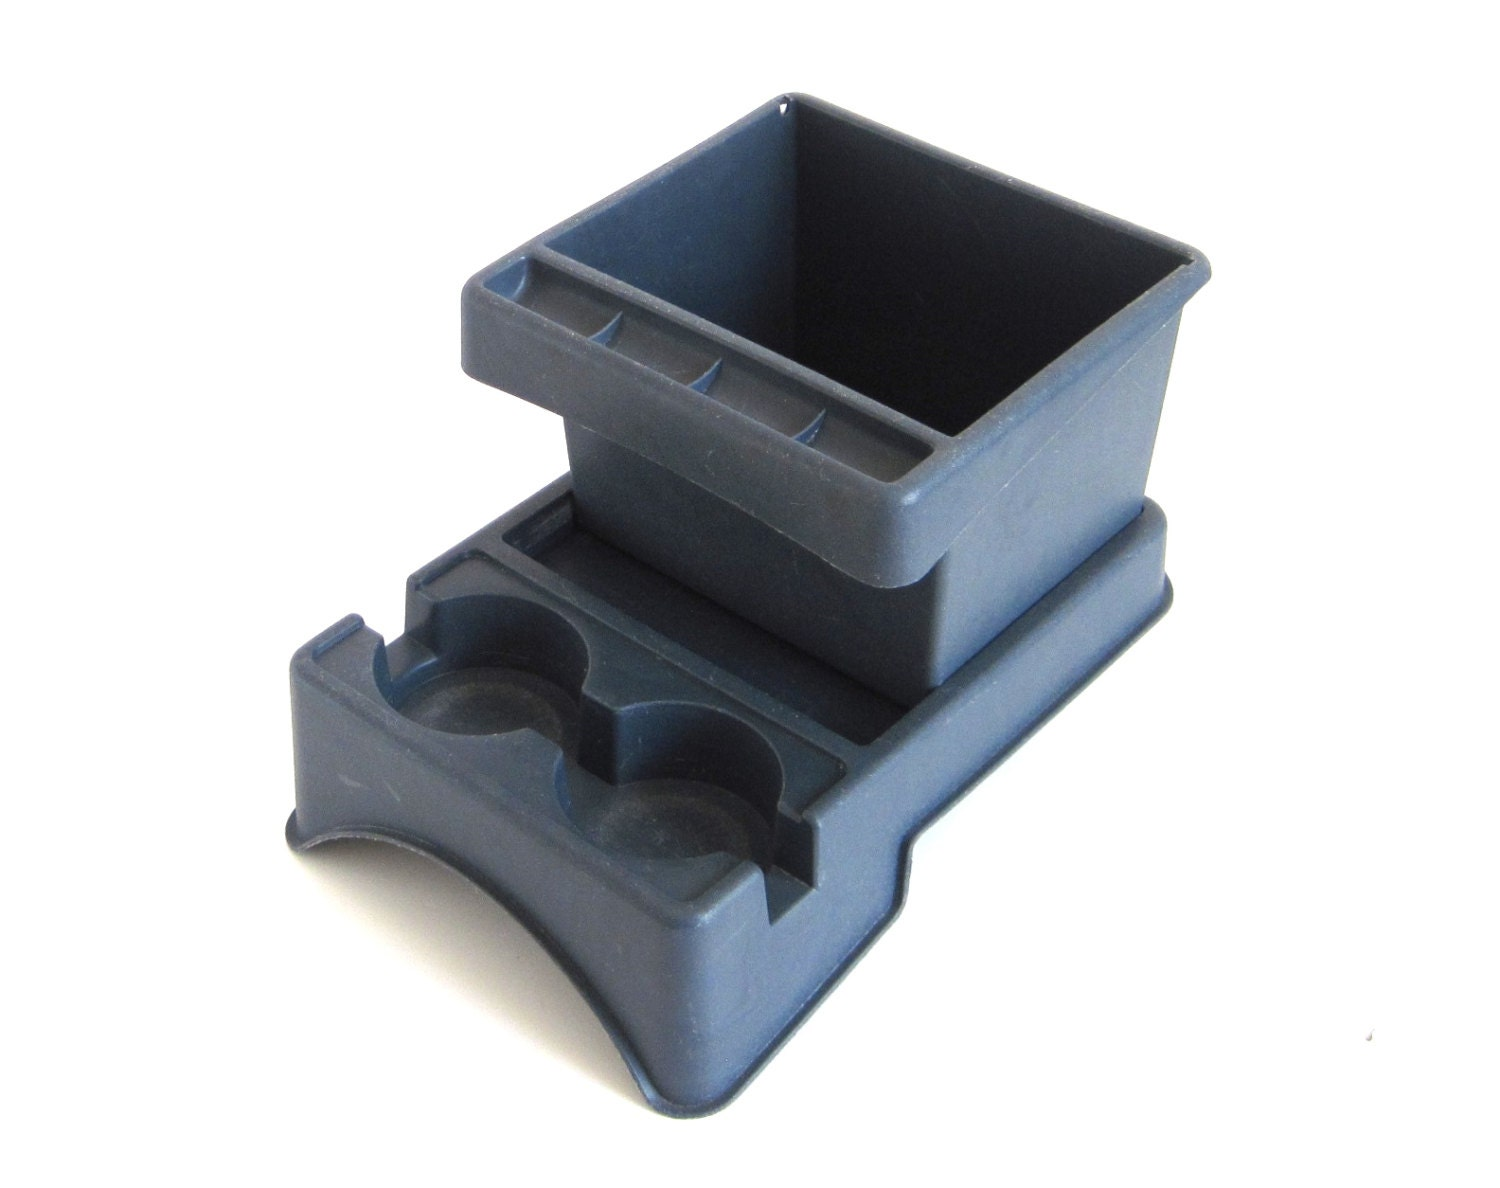 auto cup holder 1980s rubber queen car console 6243 blue. Black Bedroom Furniture Sets. Home Design Ideas